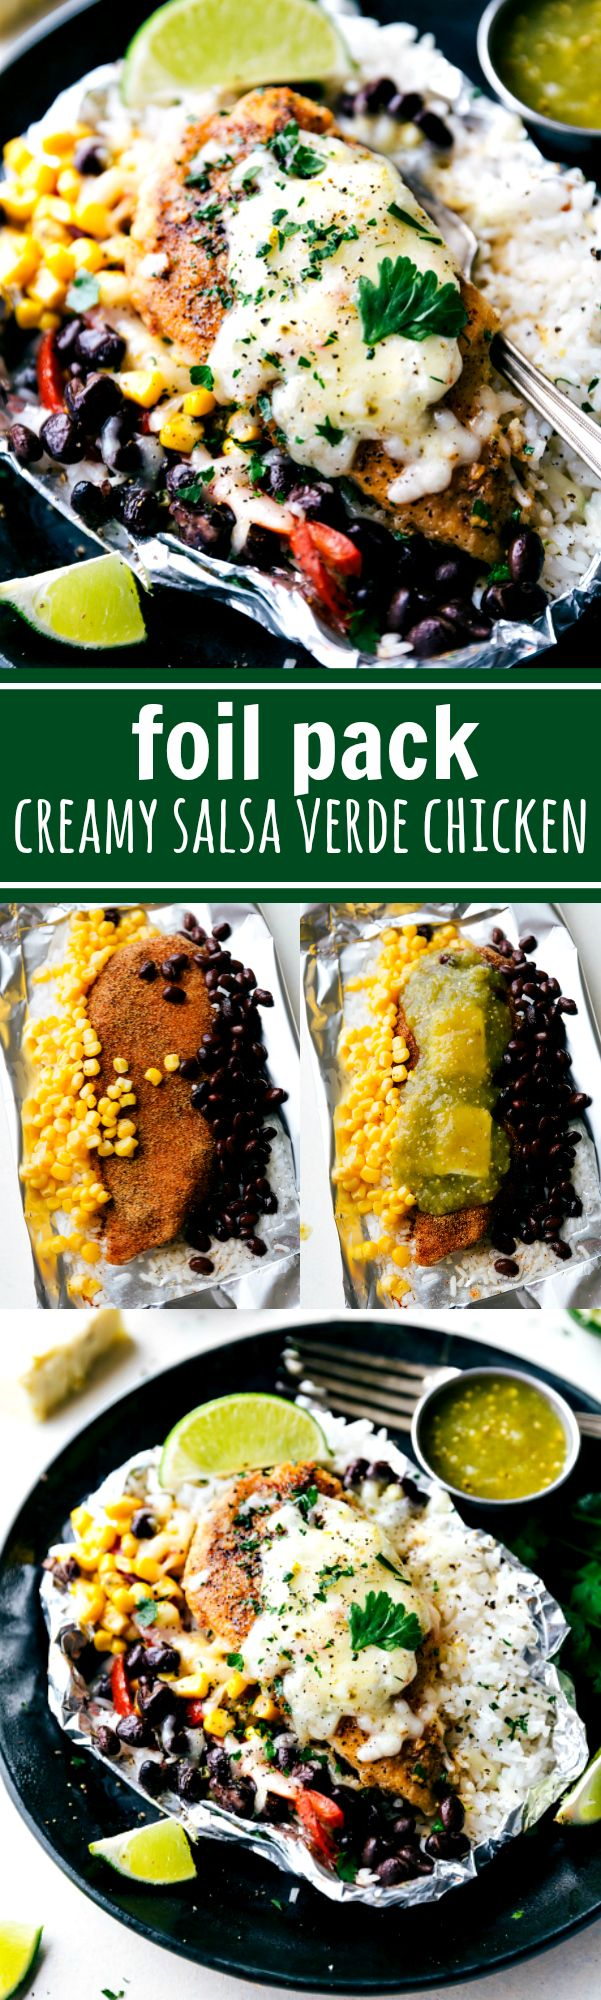 Creamy salsa verde chicken with rice and veggies all cooked at once in a foil packet! No need to pre-cook the rice or chicken. This dish takes no more than 10 minutes to assemble and is bursting with